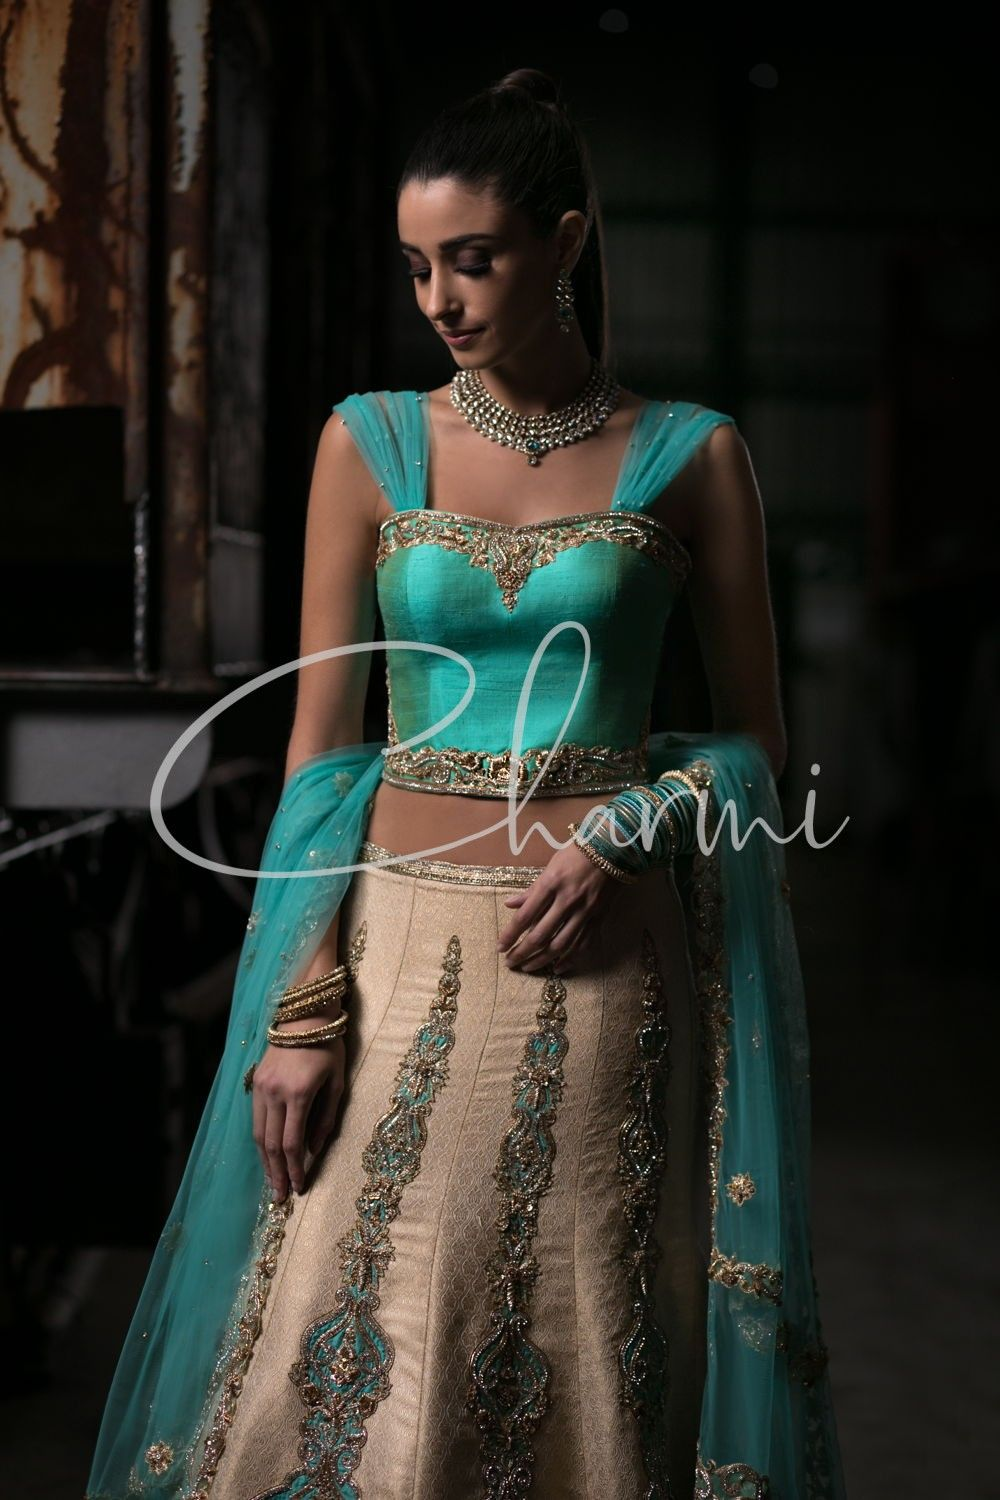 Gold Brocade Blue Raw Silk Lehenga for Reception Outfit